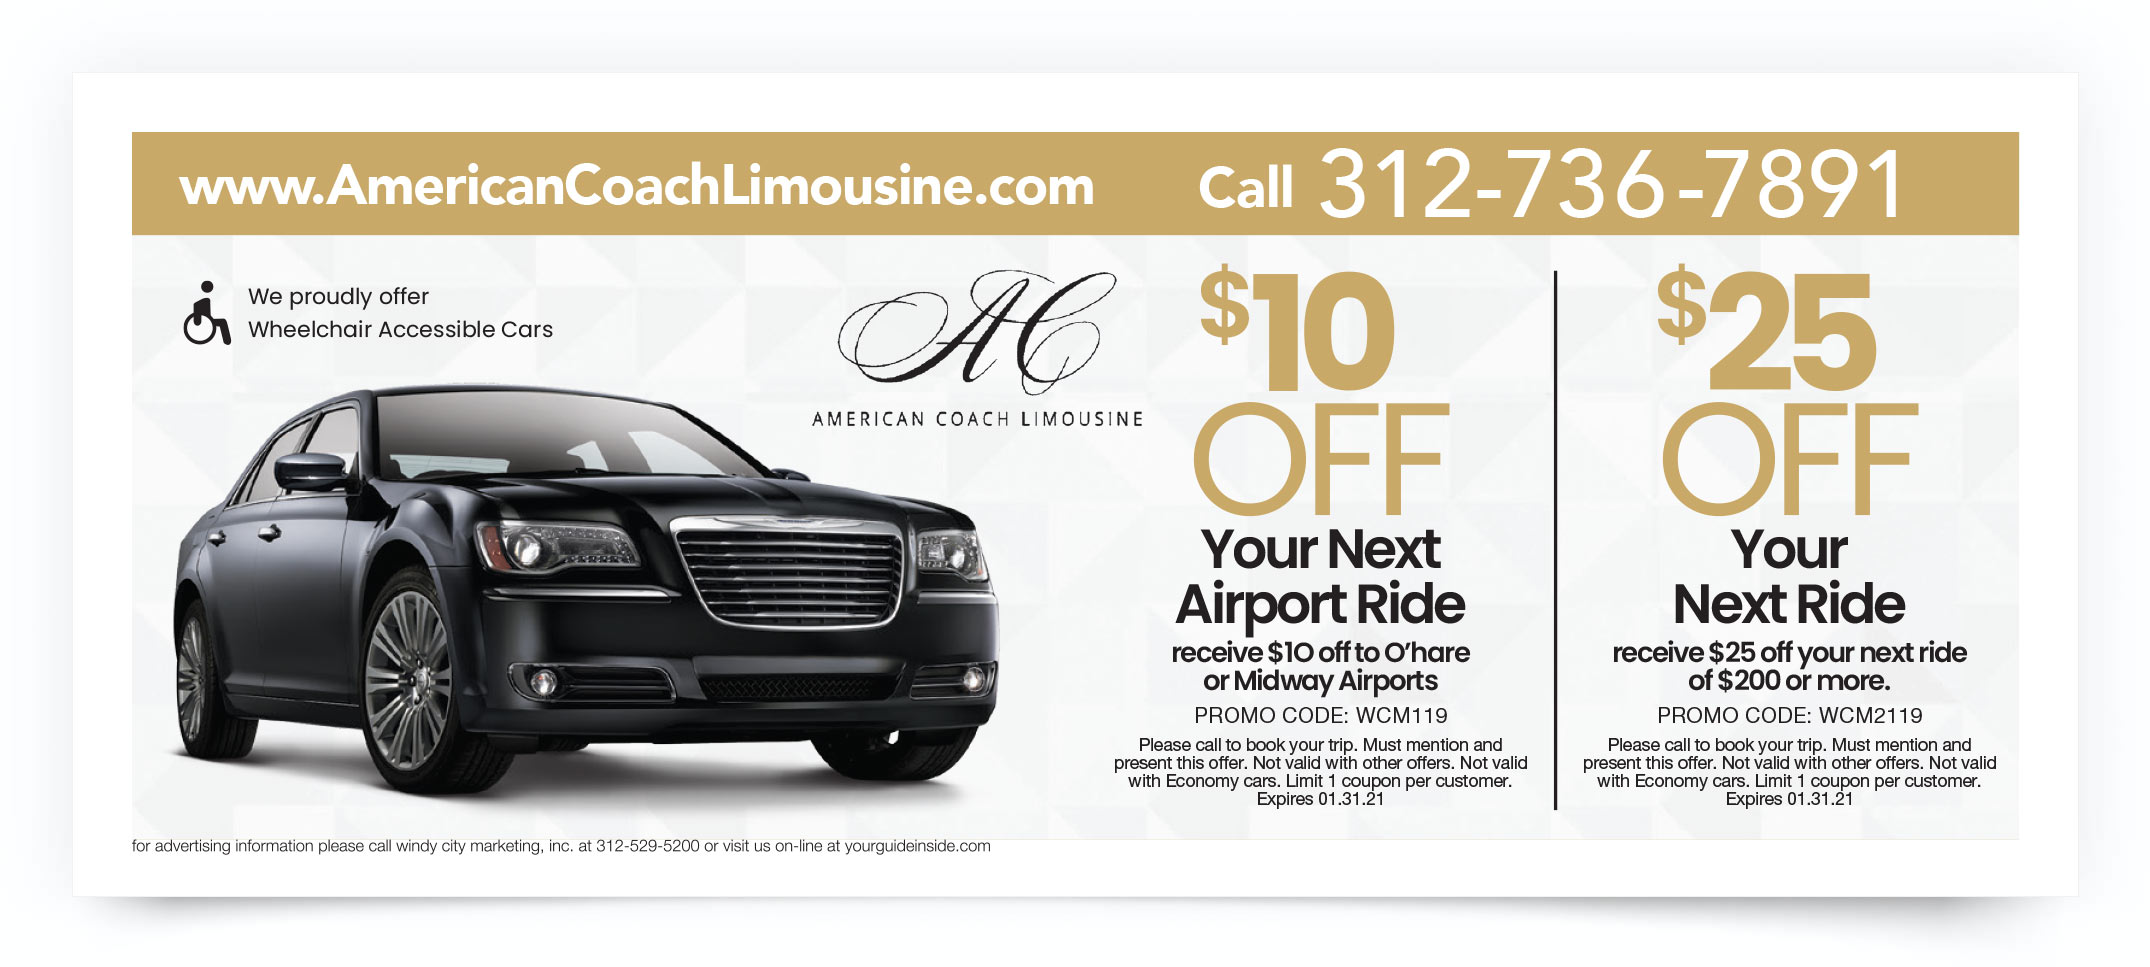 American Coach Limousine Chicago Coupon Offer